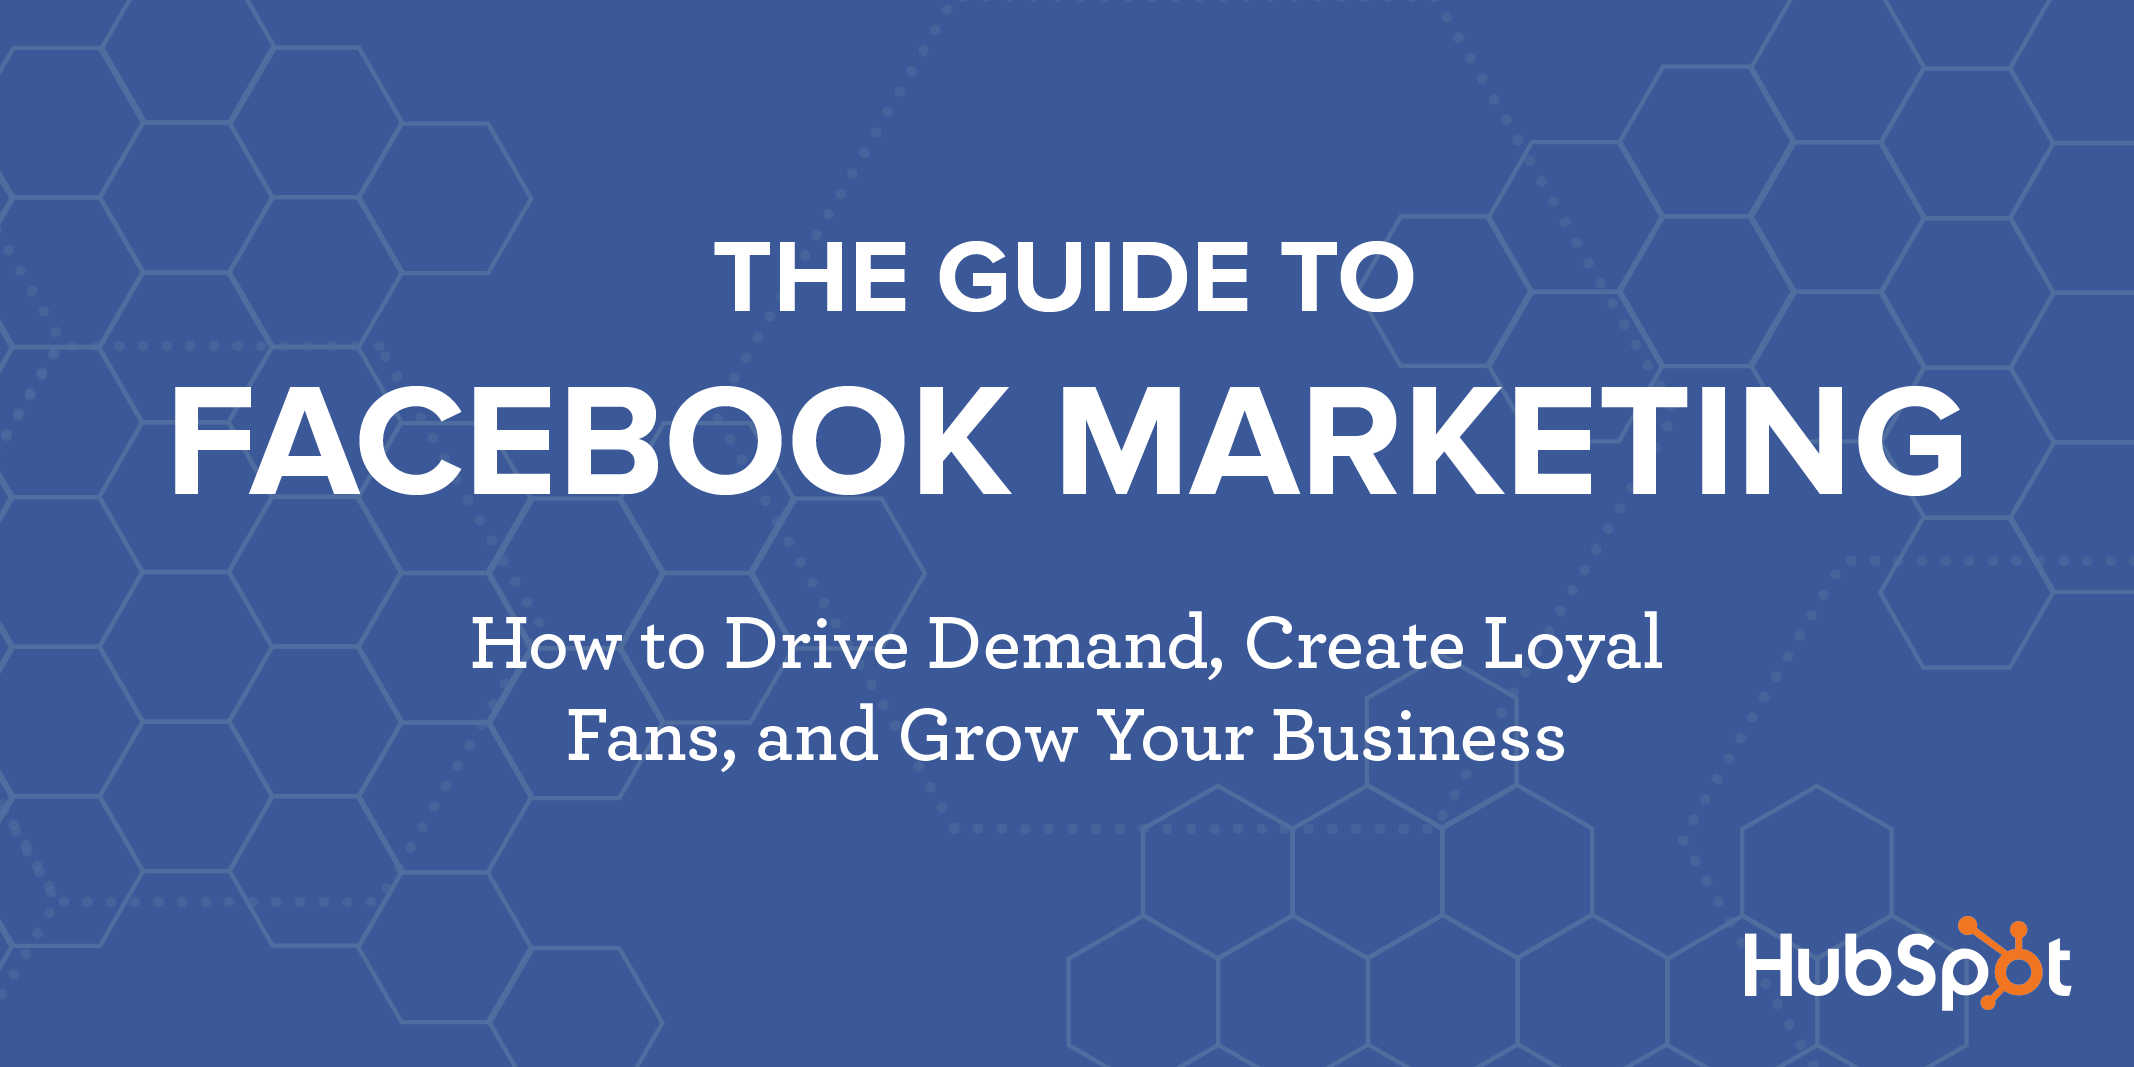 the guide to facebook marketing: how to drive demand, create loyal fans, and grow your business